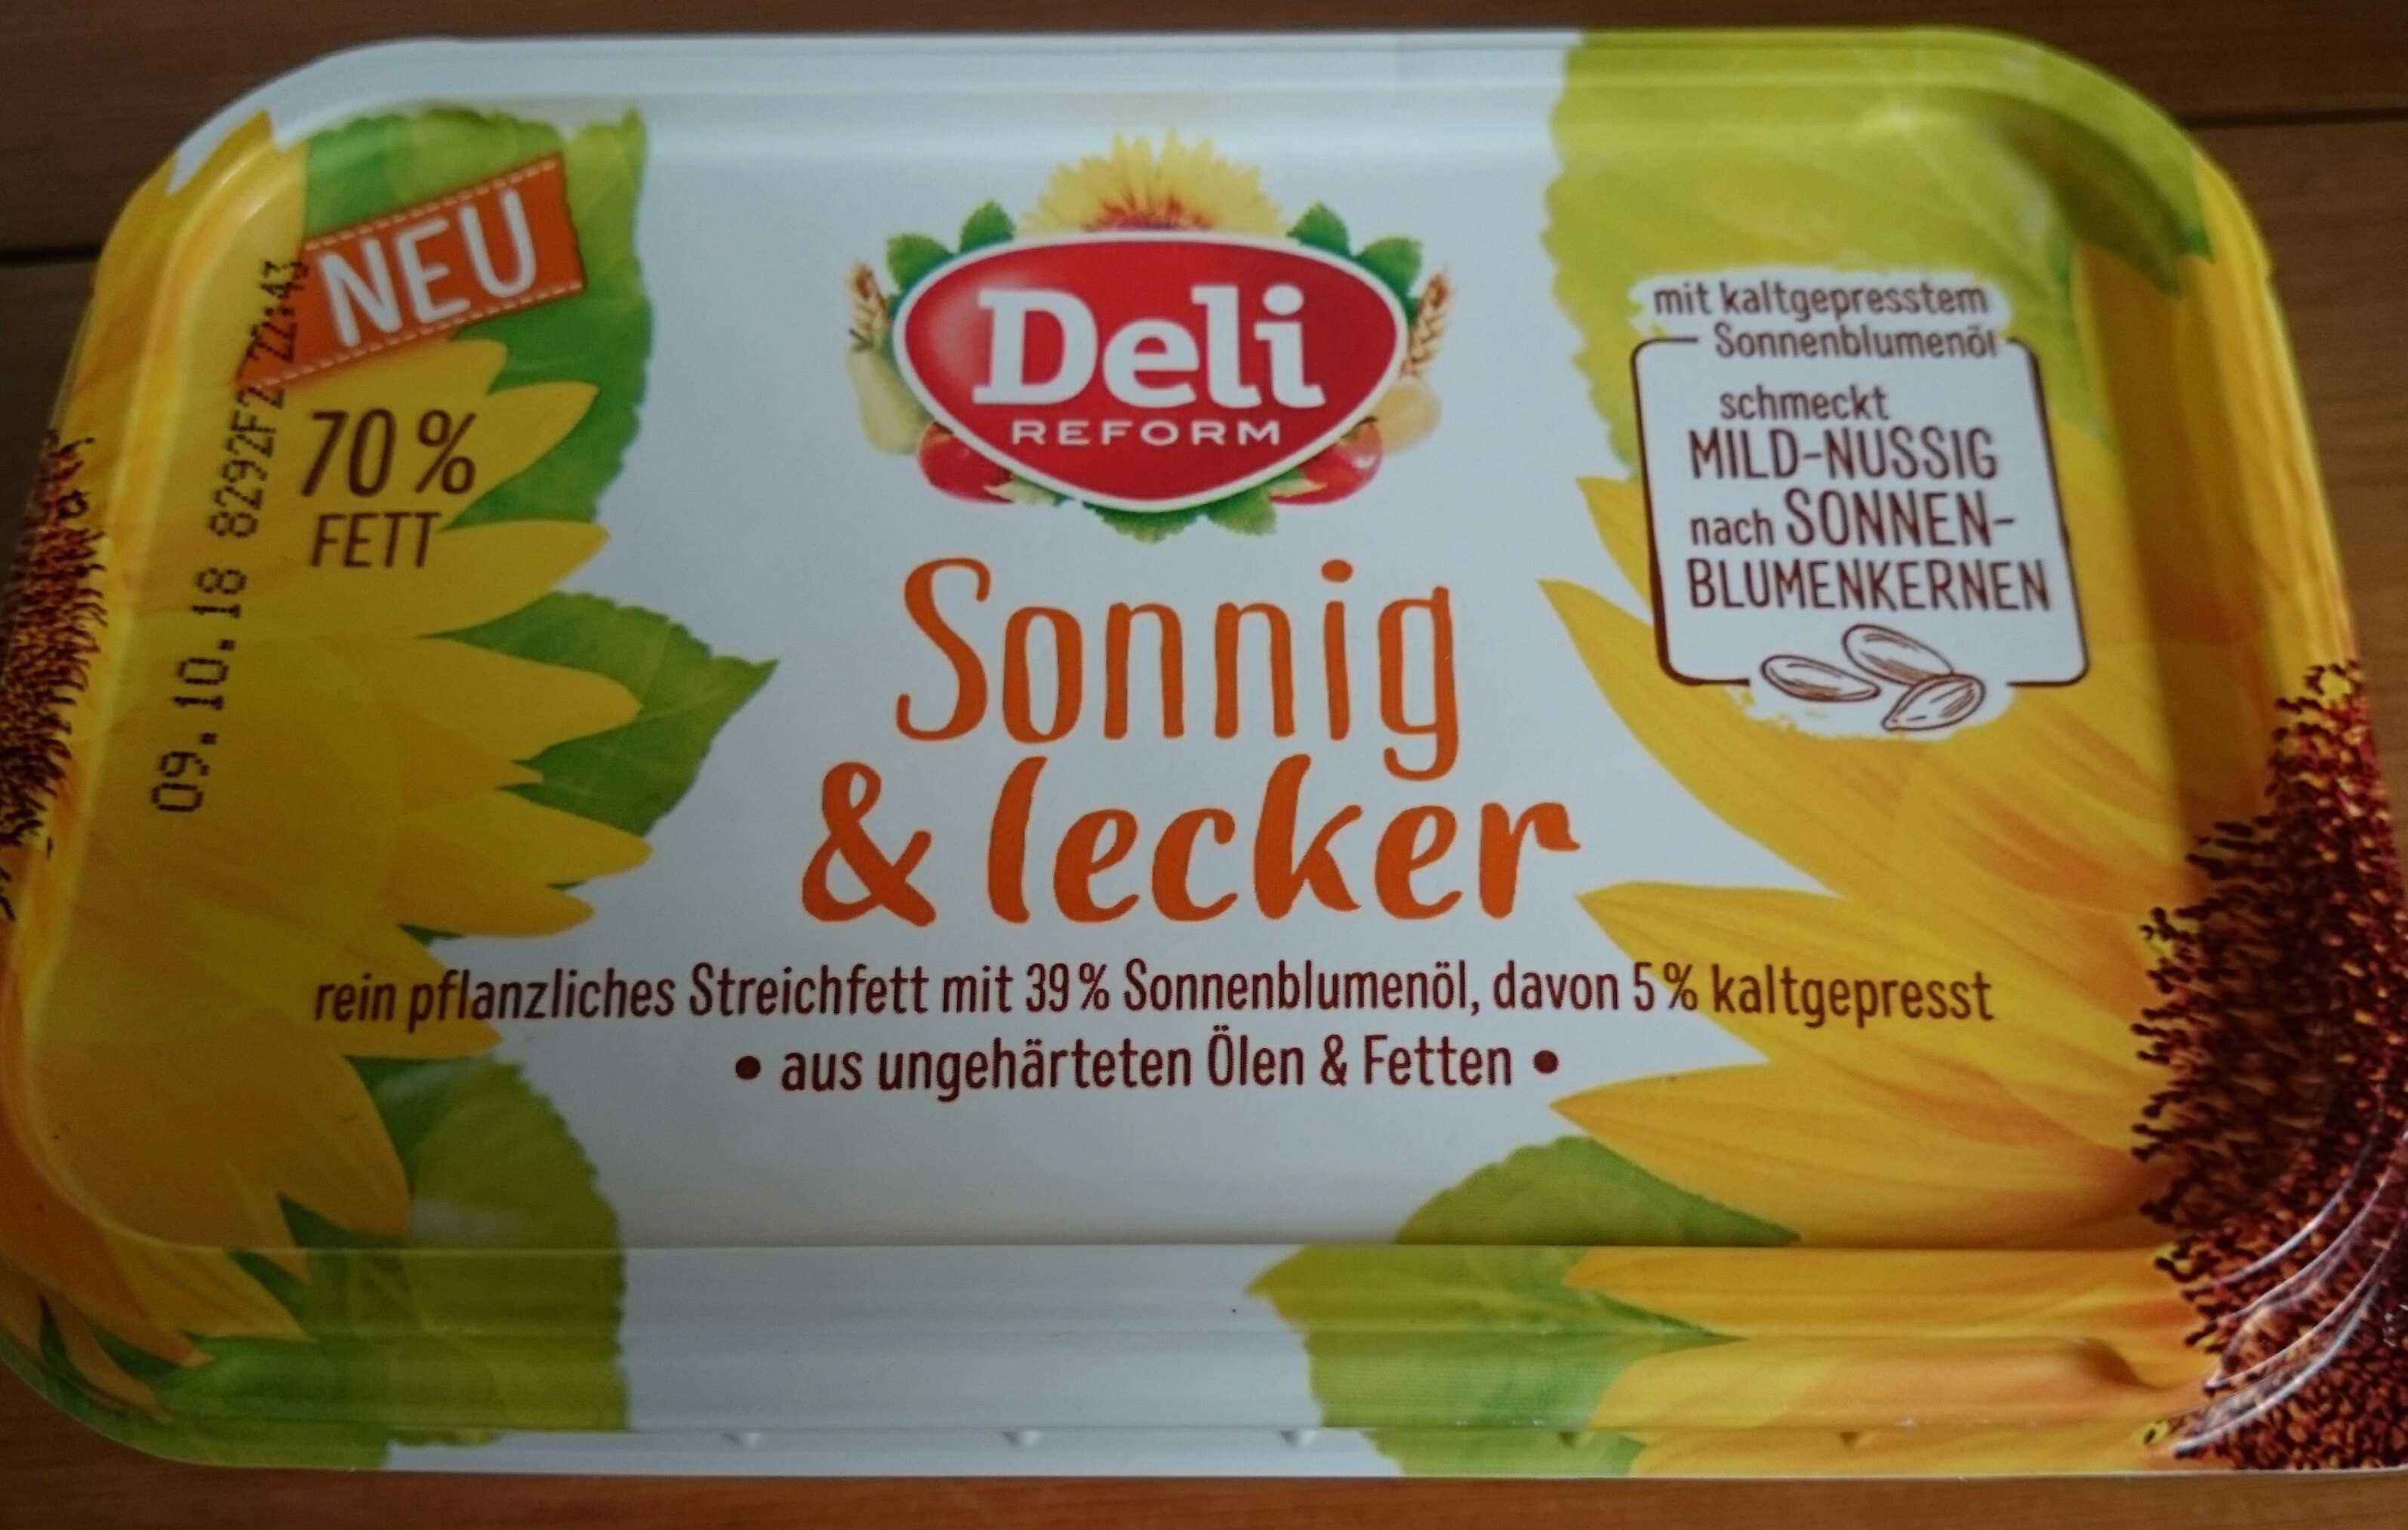 Sonnig & lecker - Product